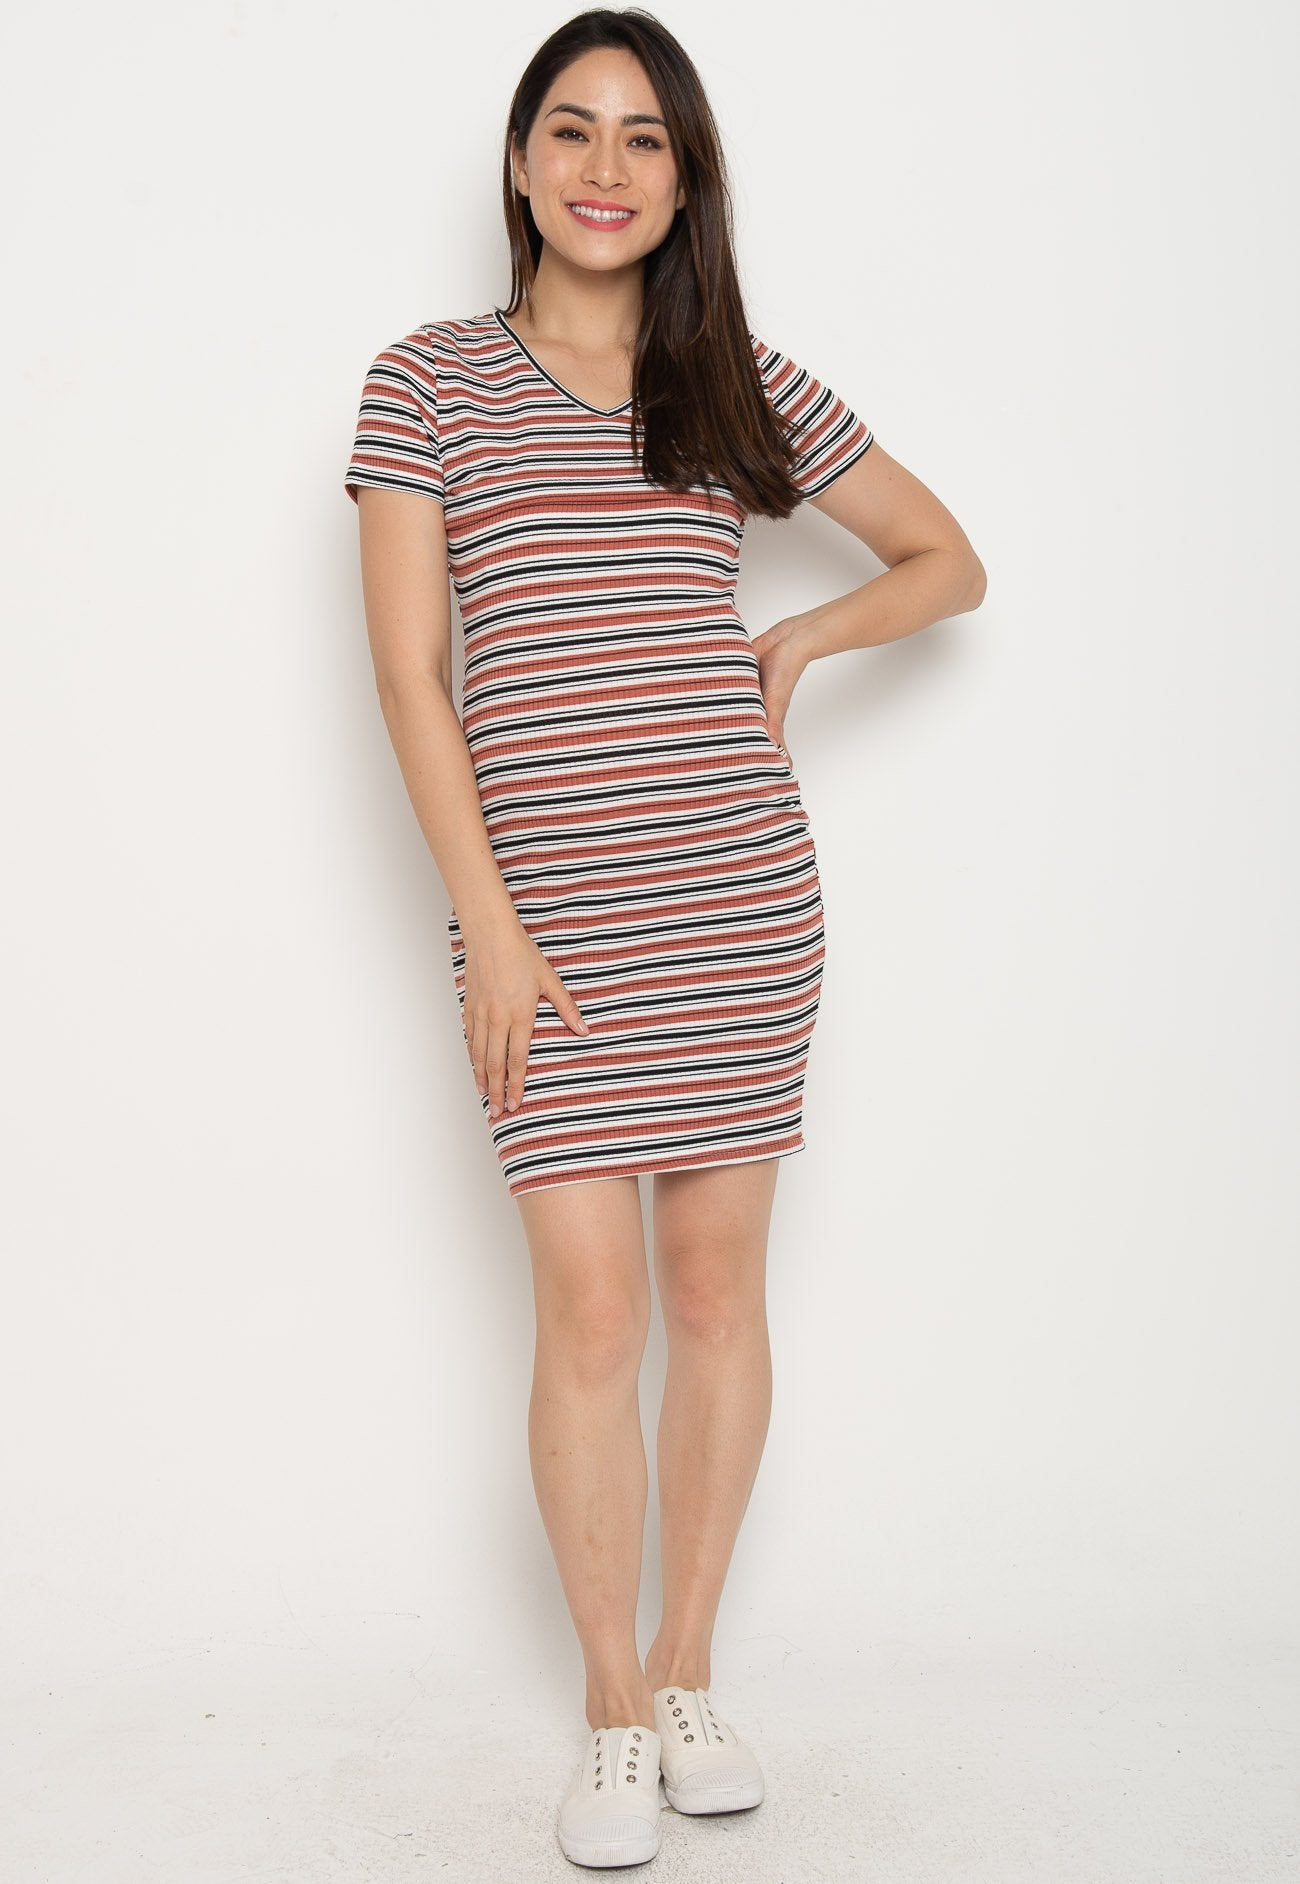 Mothercot Paige Bodycon Nursing Dress in Rust  by JumpEatCry - Maternity and nursing wear